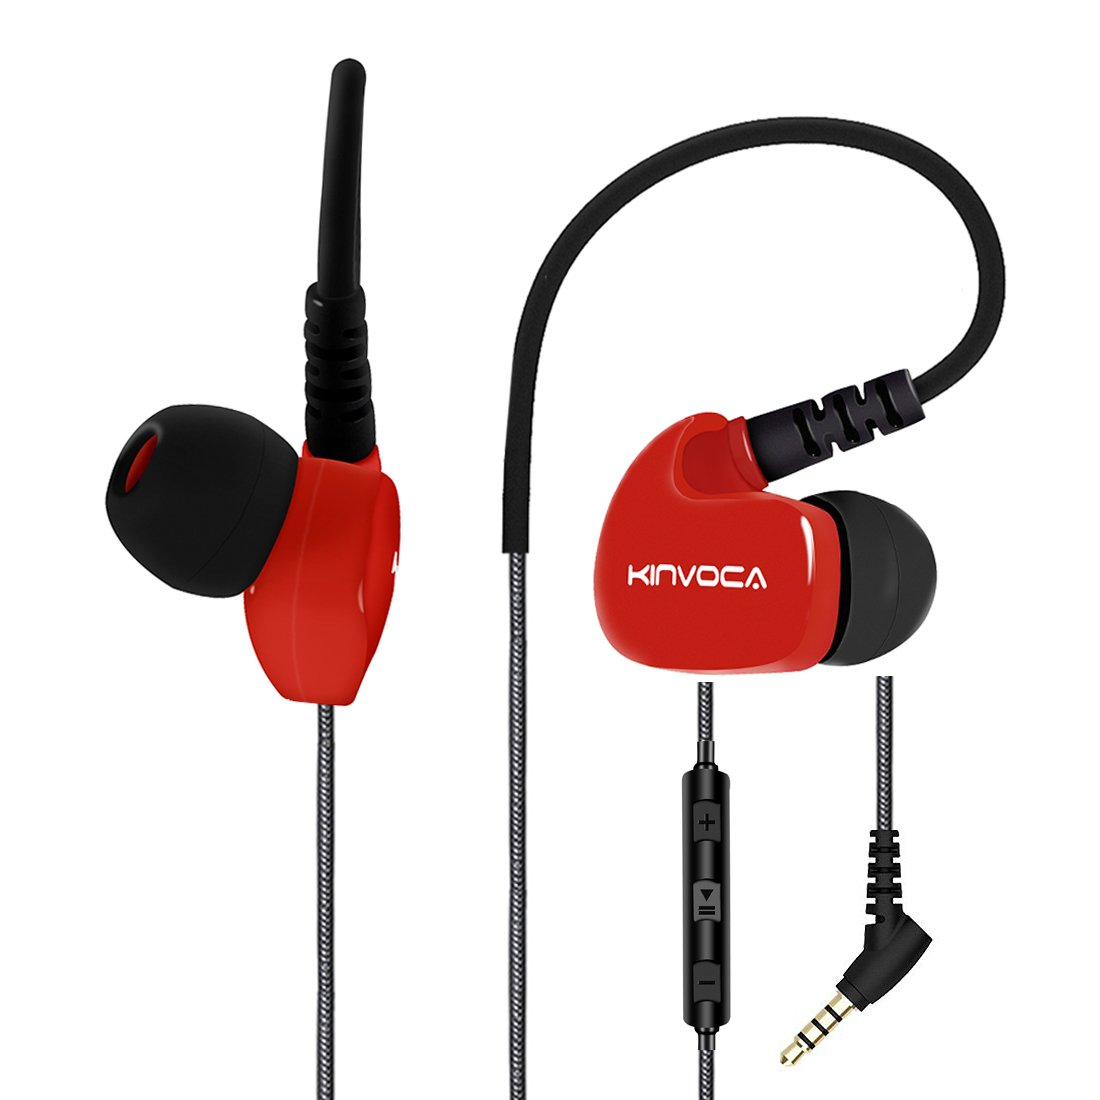 KINVOCA Wired Sweatproof Earhook in Ear Sport Workout Headphones Noise Isolating Over Ear Earbuds with Microphone Remote for Running Jogging Gym Exercise Earphones Cell Phone Ear Buds Headset Red